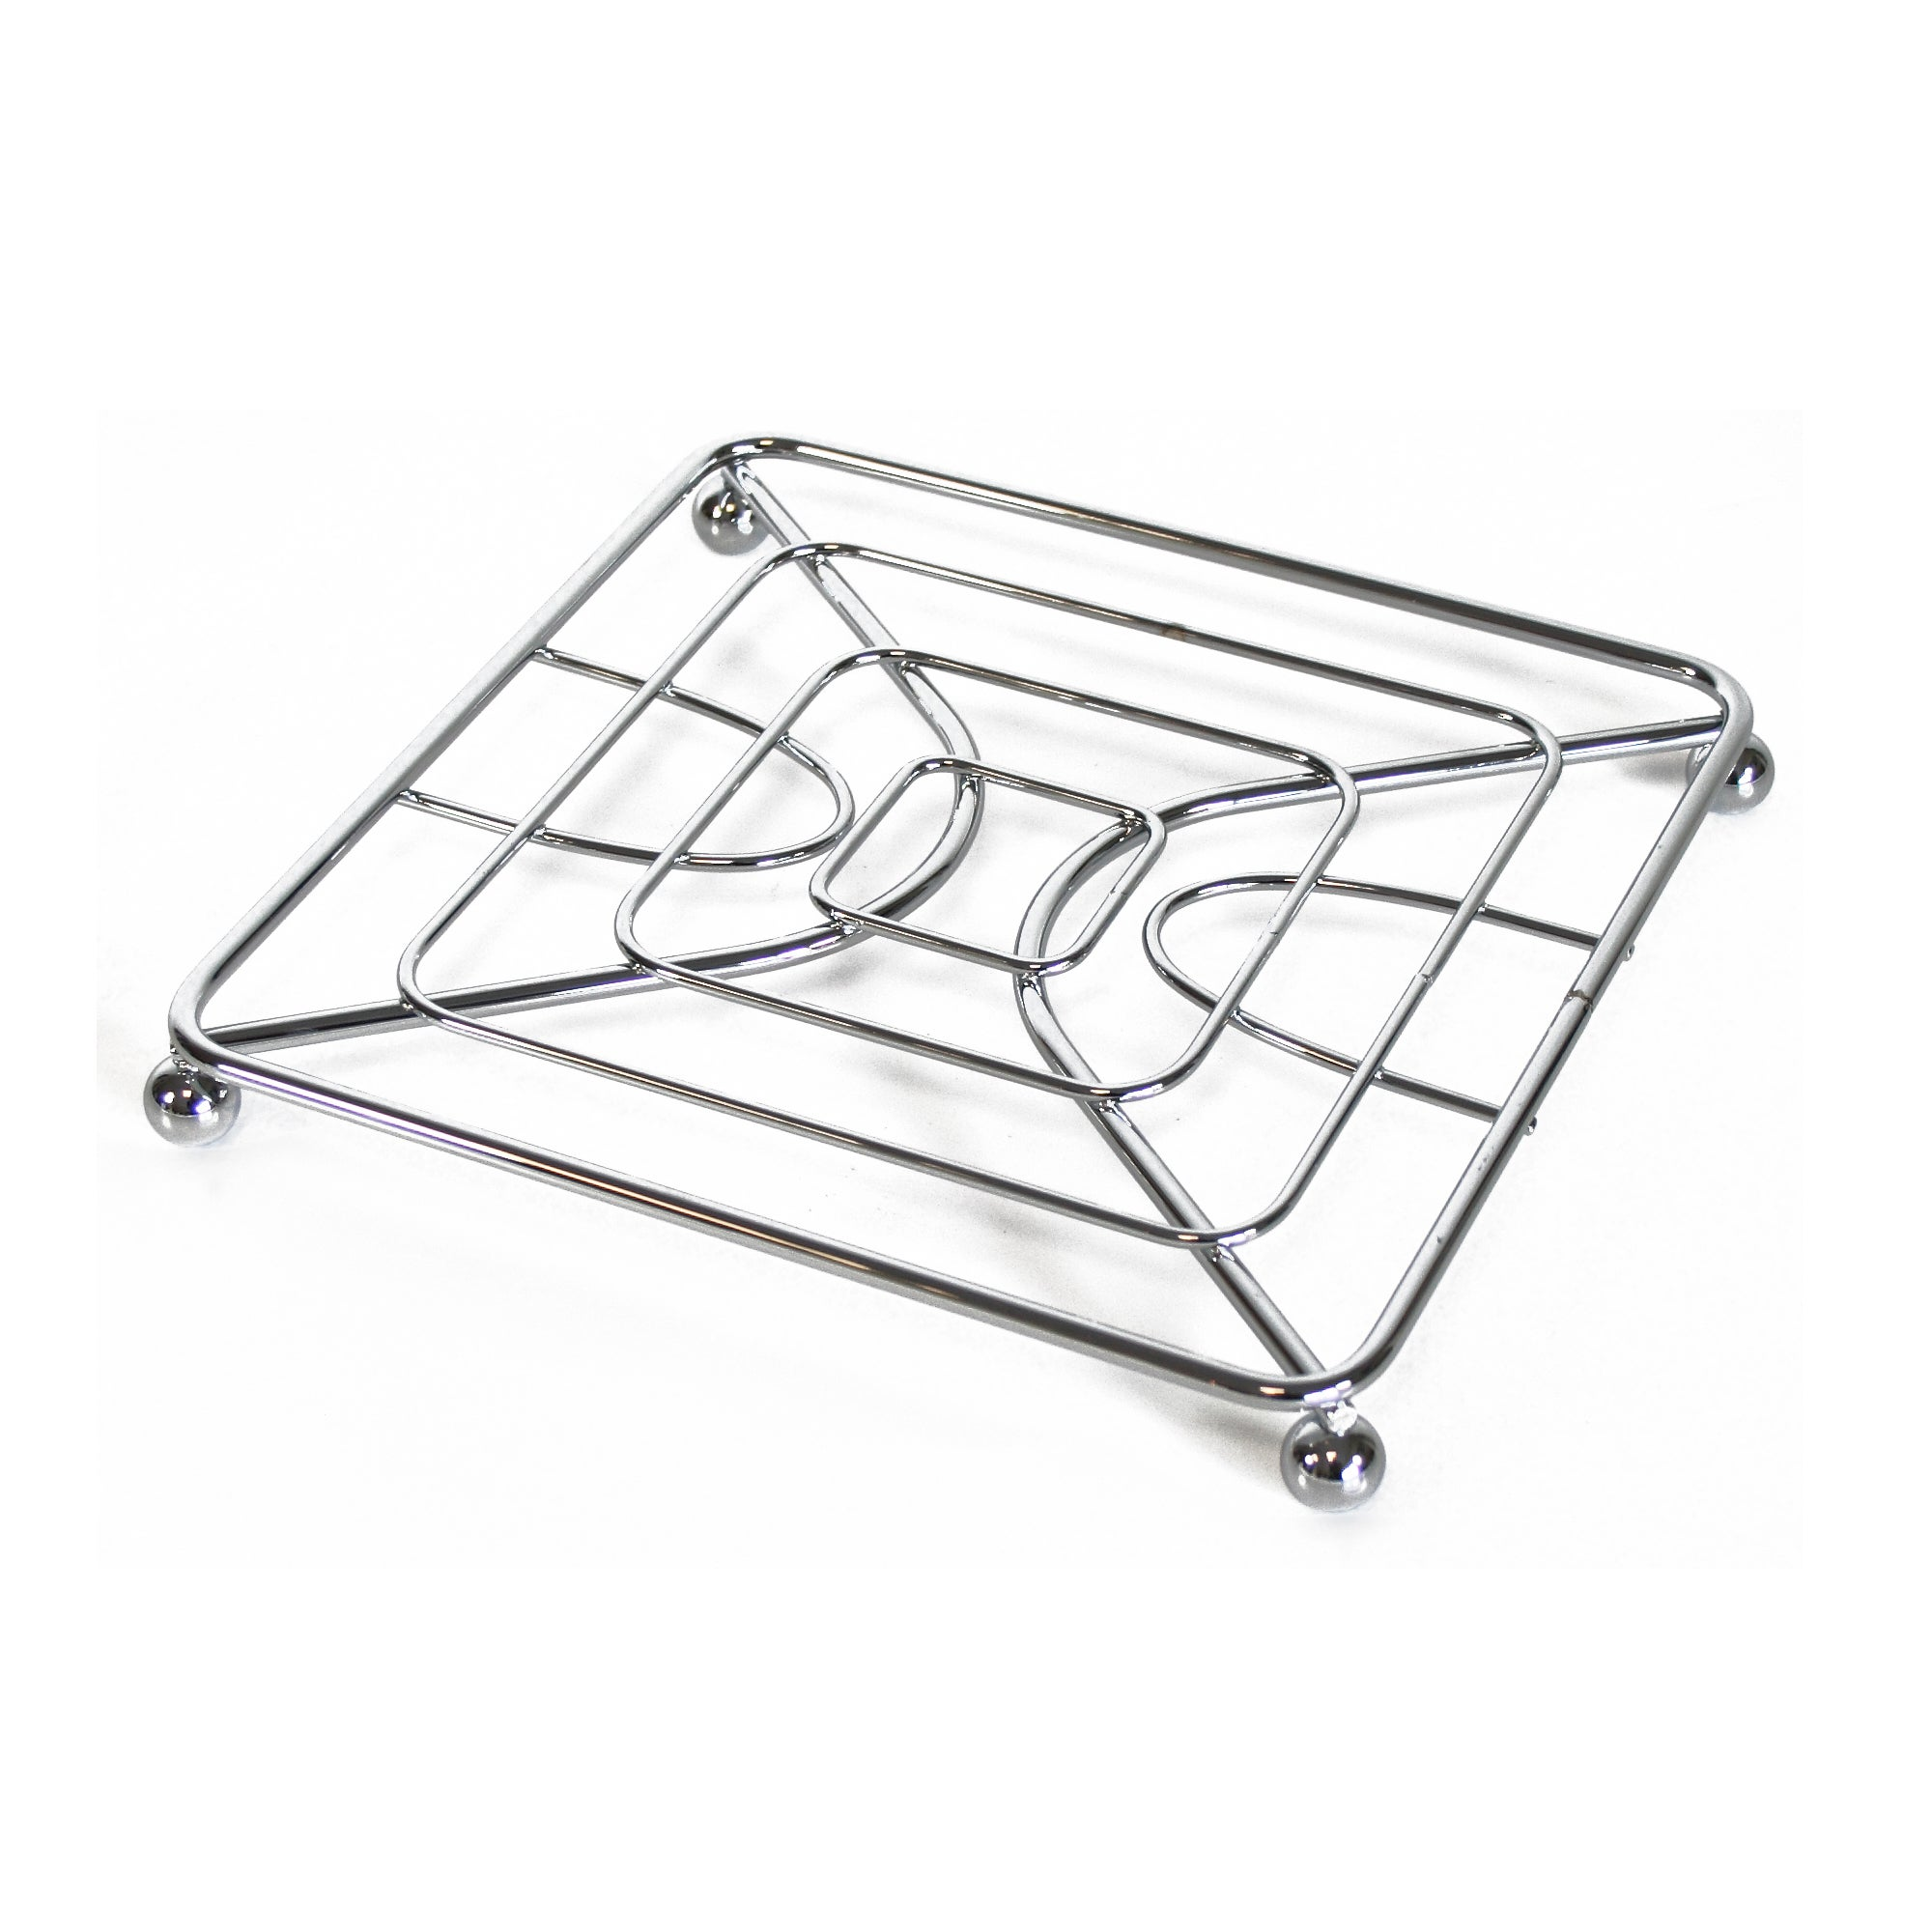 Cookshop Collection Square Trivet